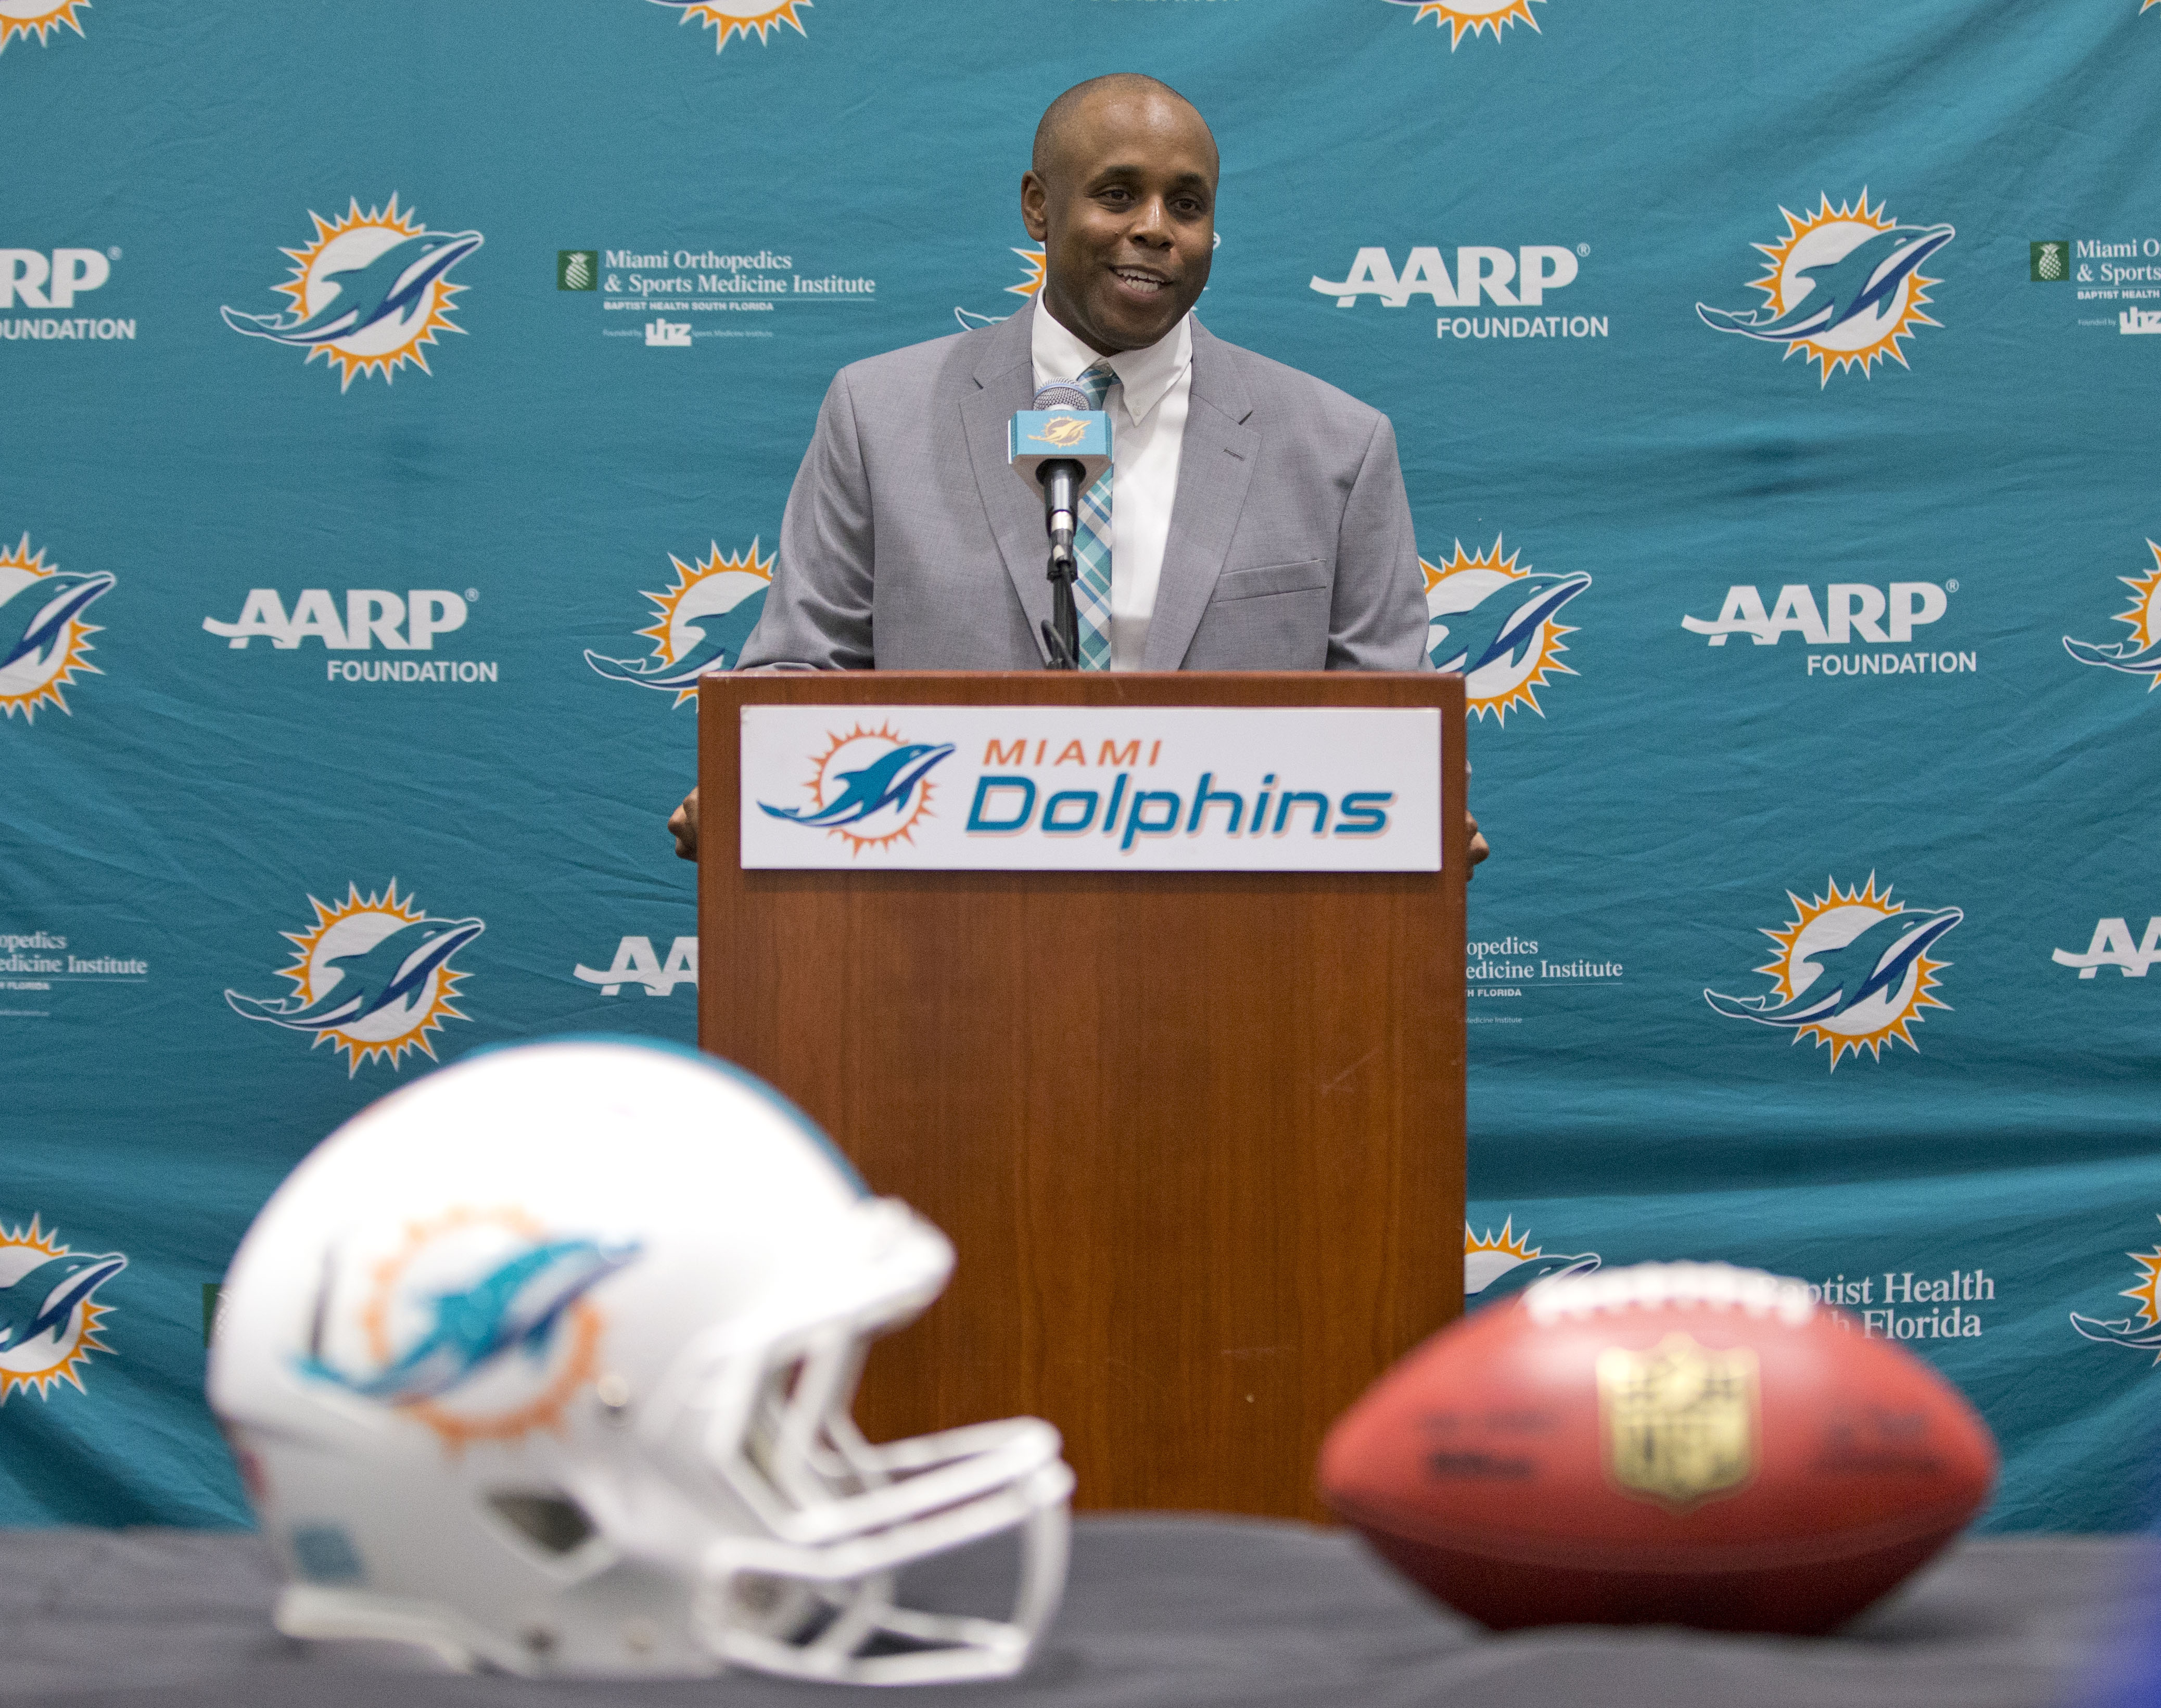 Miami Dolphins former director of college scouting, Chris Grier, smiles as he speaks to the media after being introduced as the new general manager, Monday, Jan. 4, 2016 at the Dolphins training facility in Davie, Fla. Grier replaces Dennis Hickey, whose